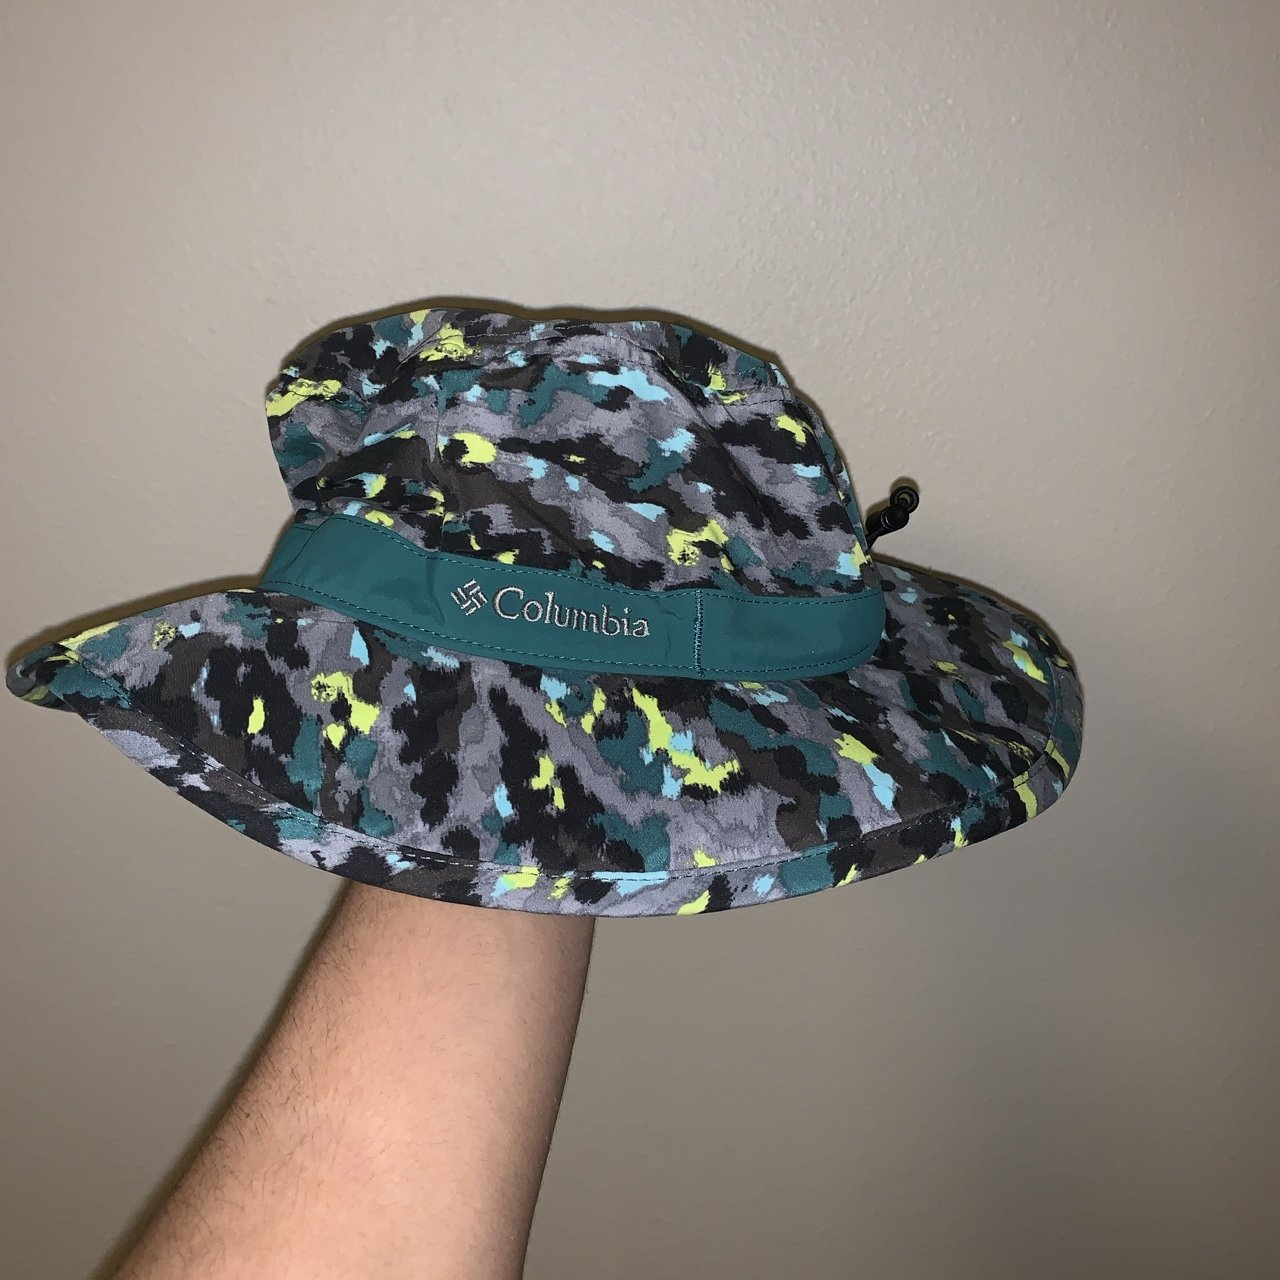 Columbia bucket hat size small - Depop 5ebad3a9c59